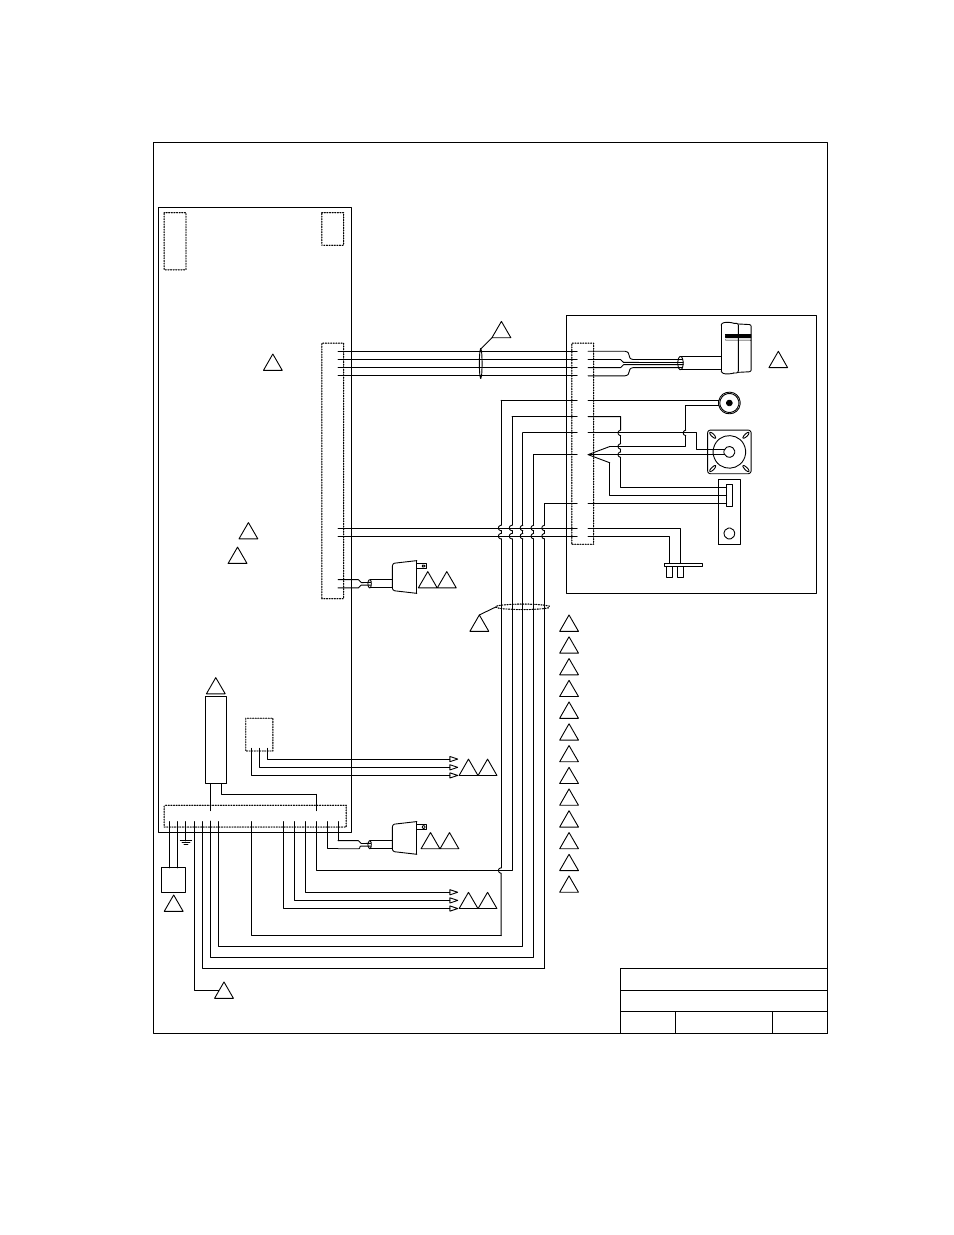 doorking 1838 multi door access controller page19 doorking 1838 multi door access controller user manual page 19 51 on door king 1838 wiring diagrams